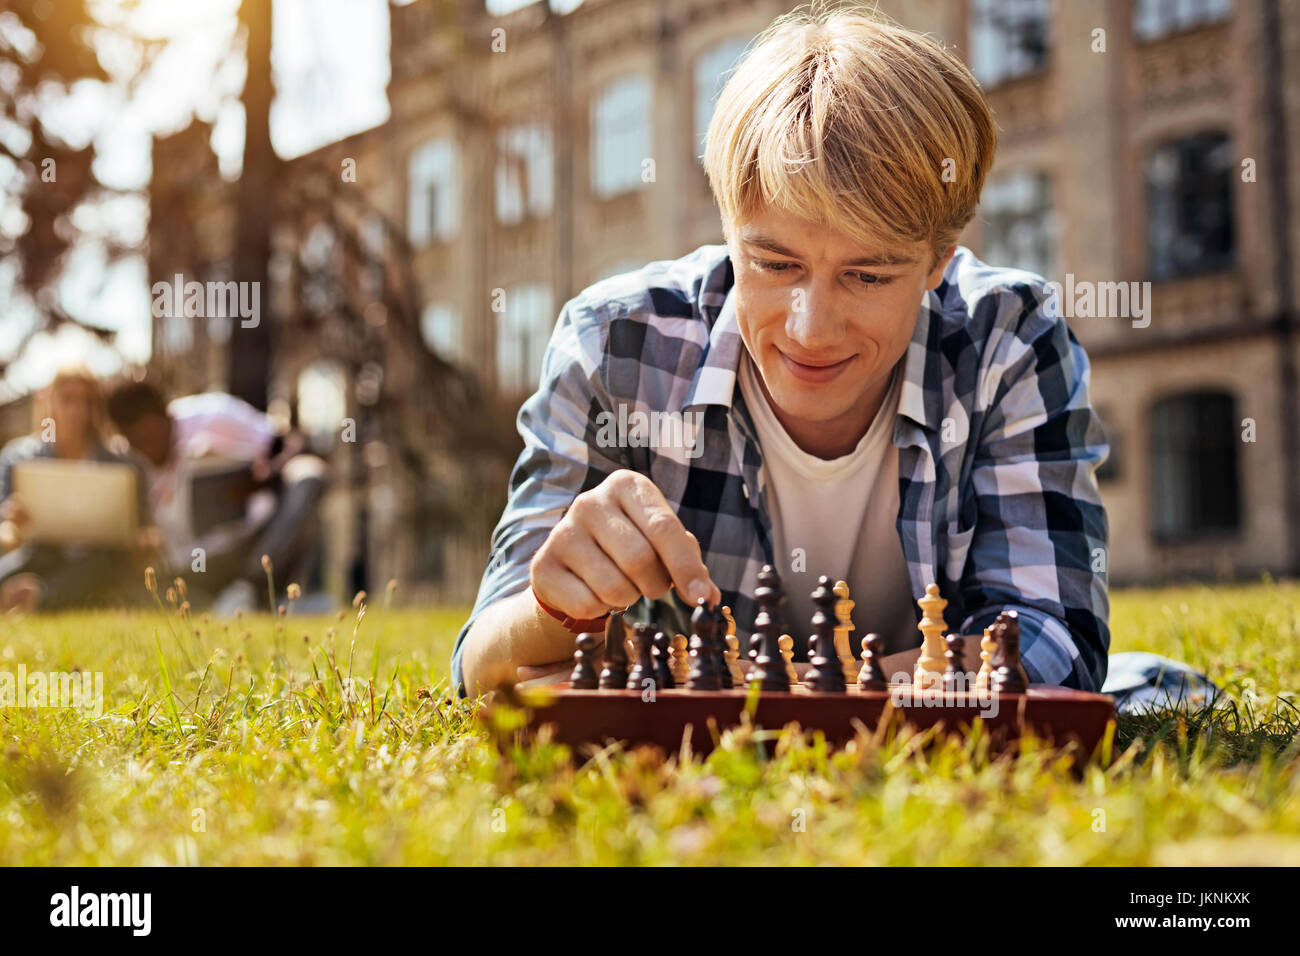 Analytical intelligent man relaxing while playing - Stock Image